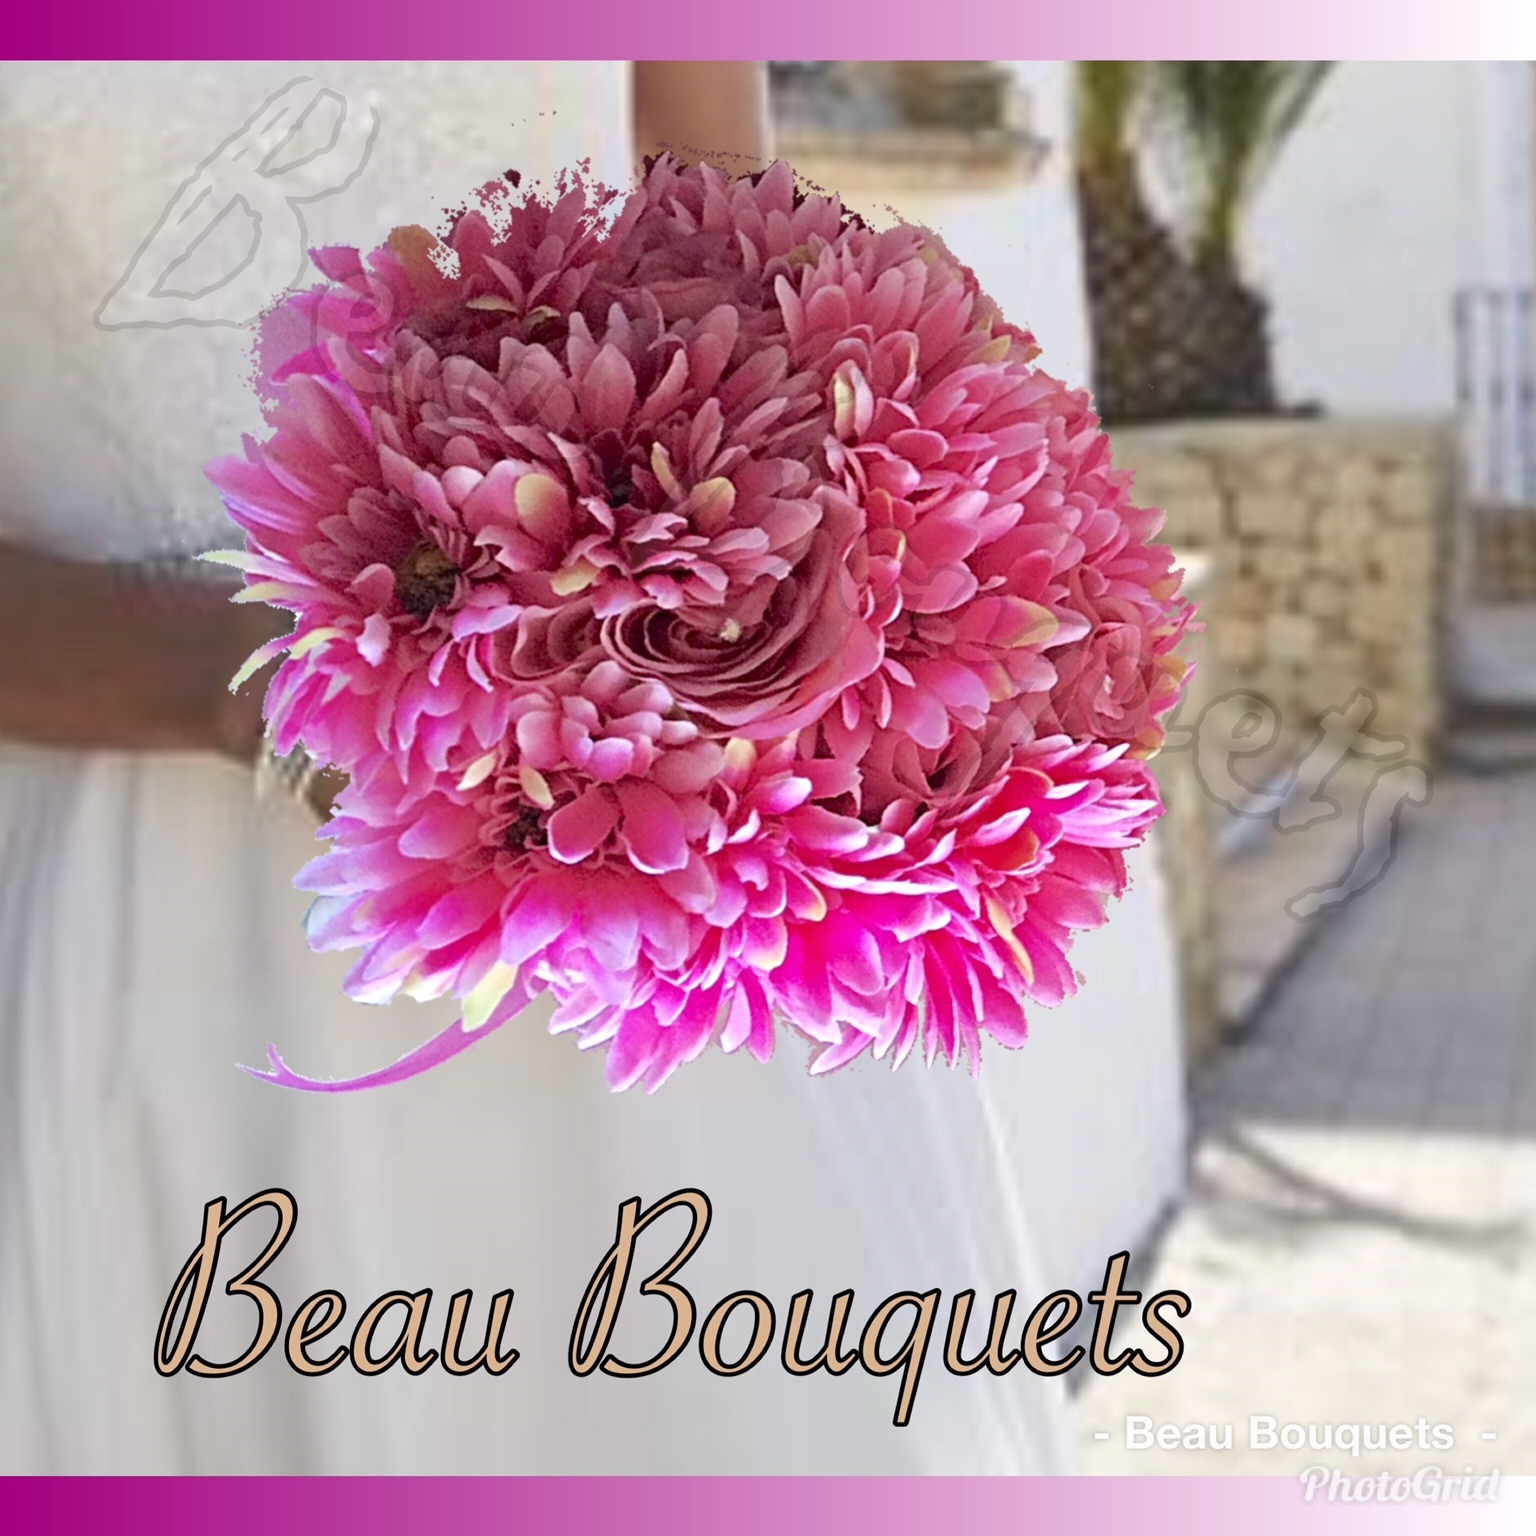 SWEET SUGAR ROUND BRIDE BOUQUET Cerise & bright pinks with white gerberas